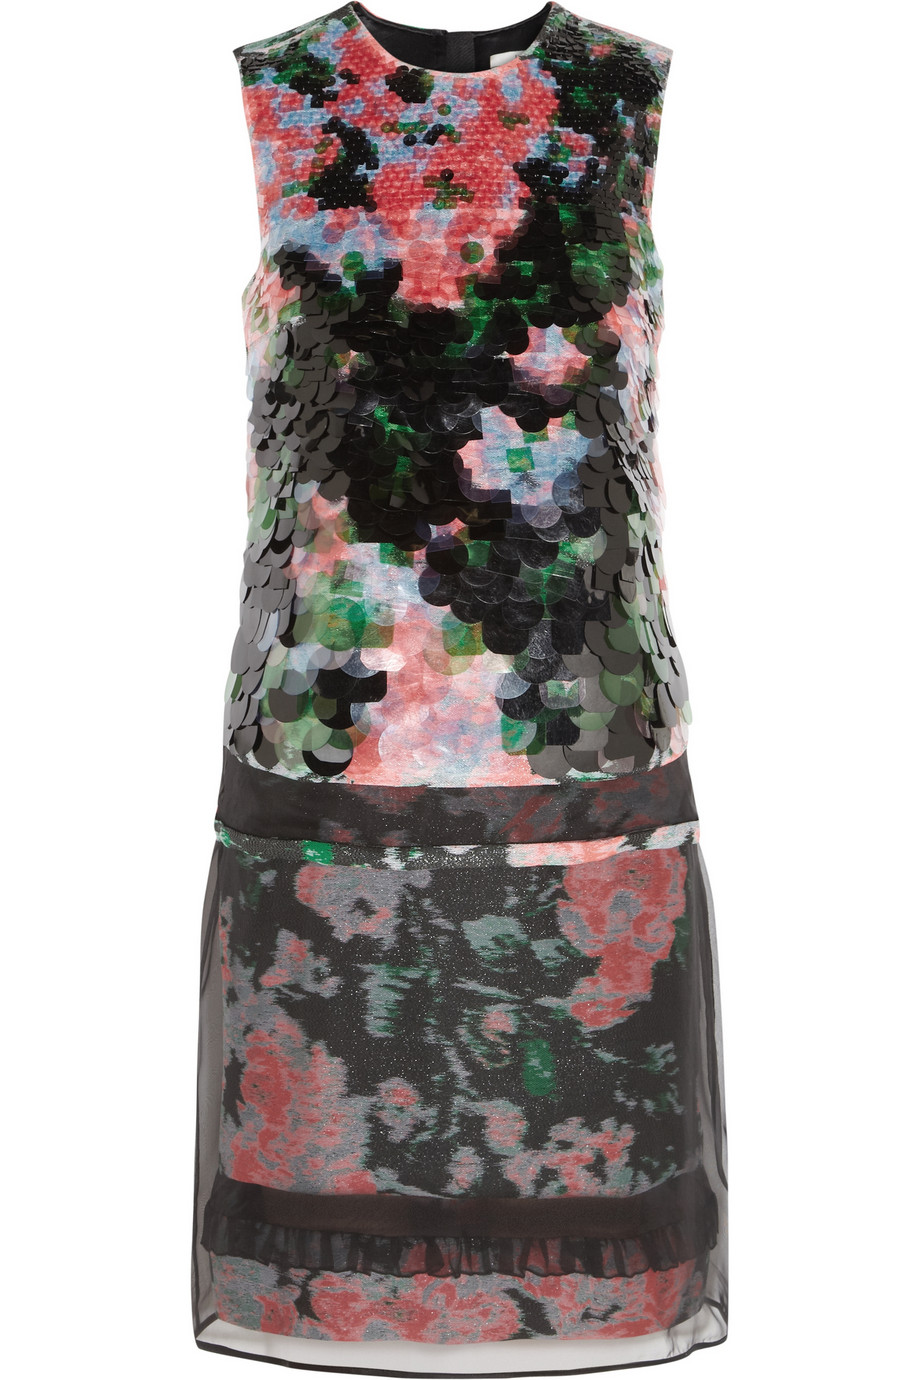 Erdem Dress From net-a-porter